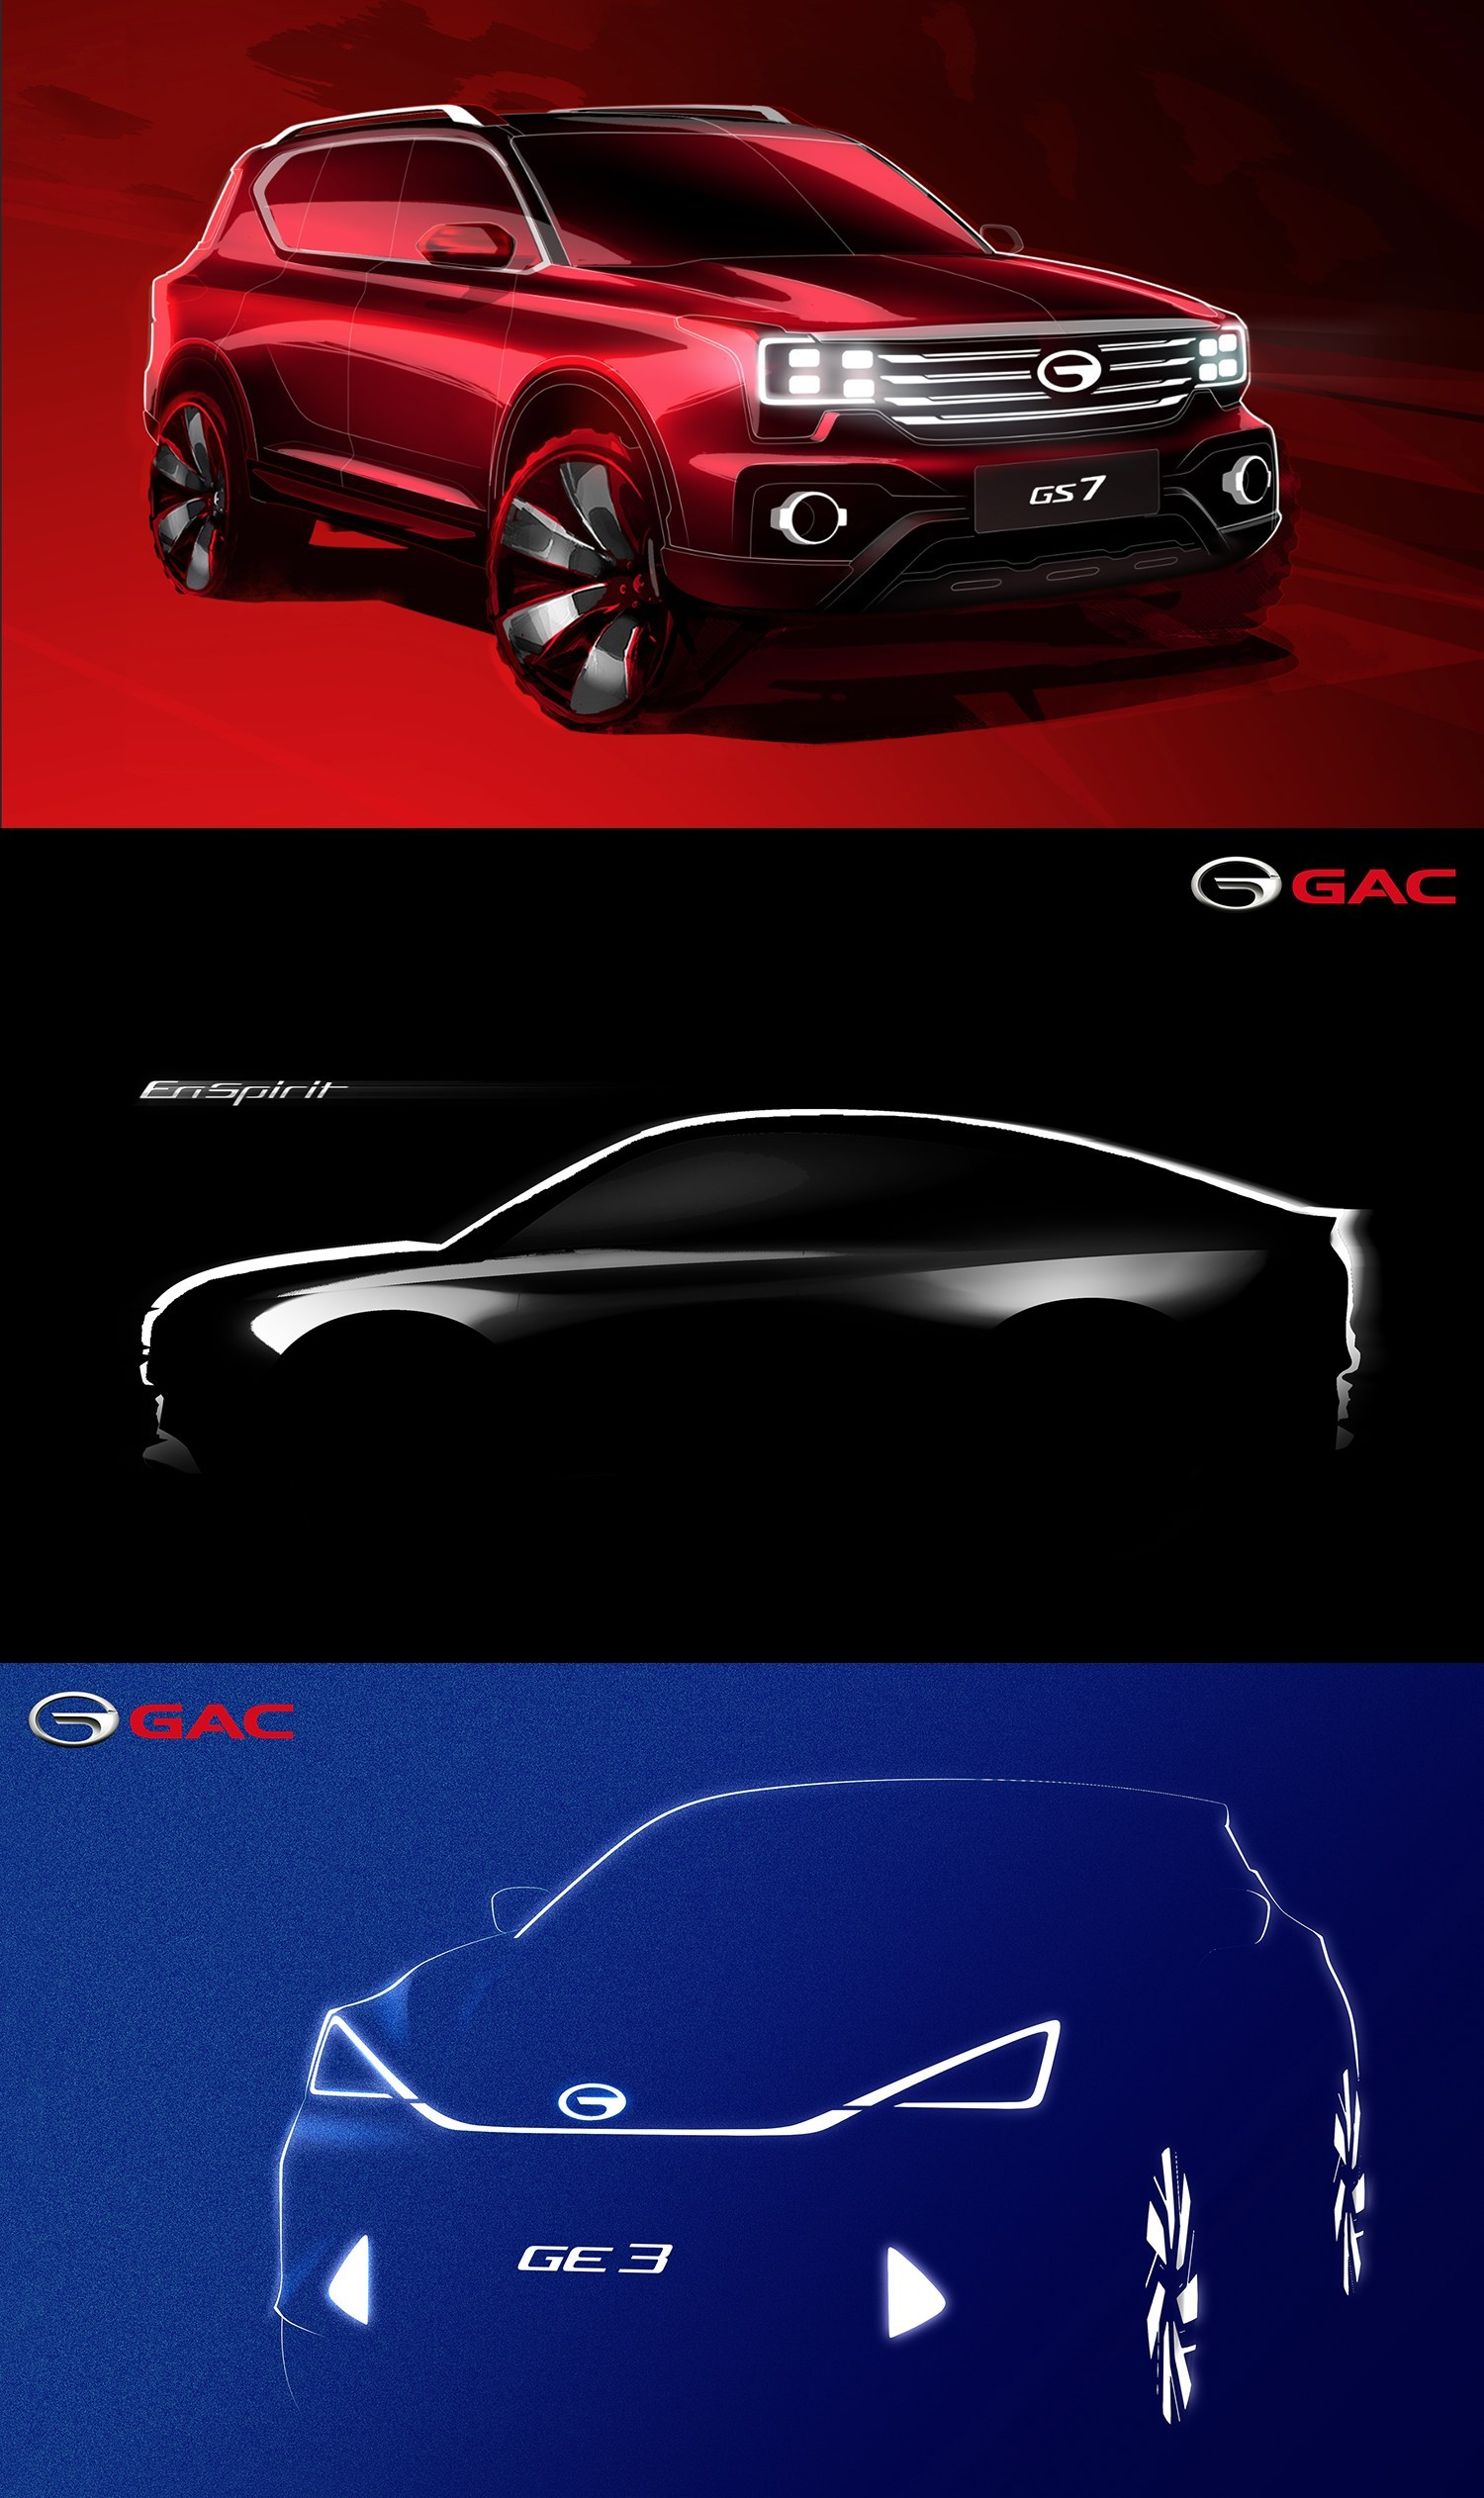 new release of carGAC Motor to host global release of three most anticipated